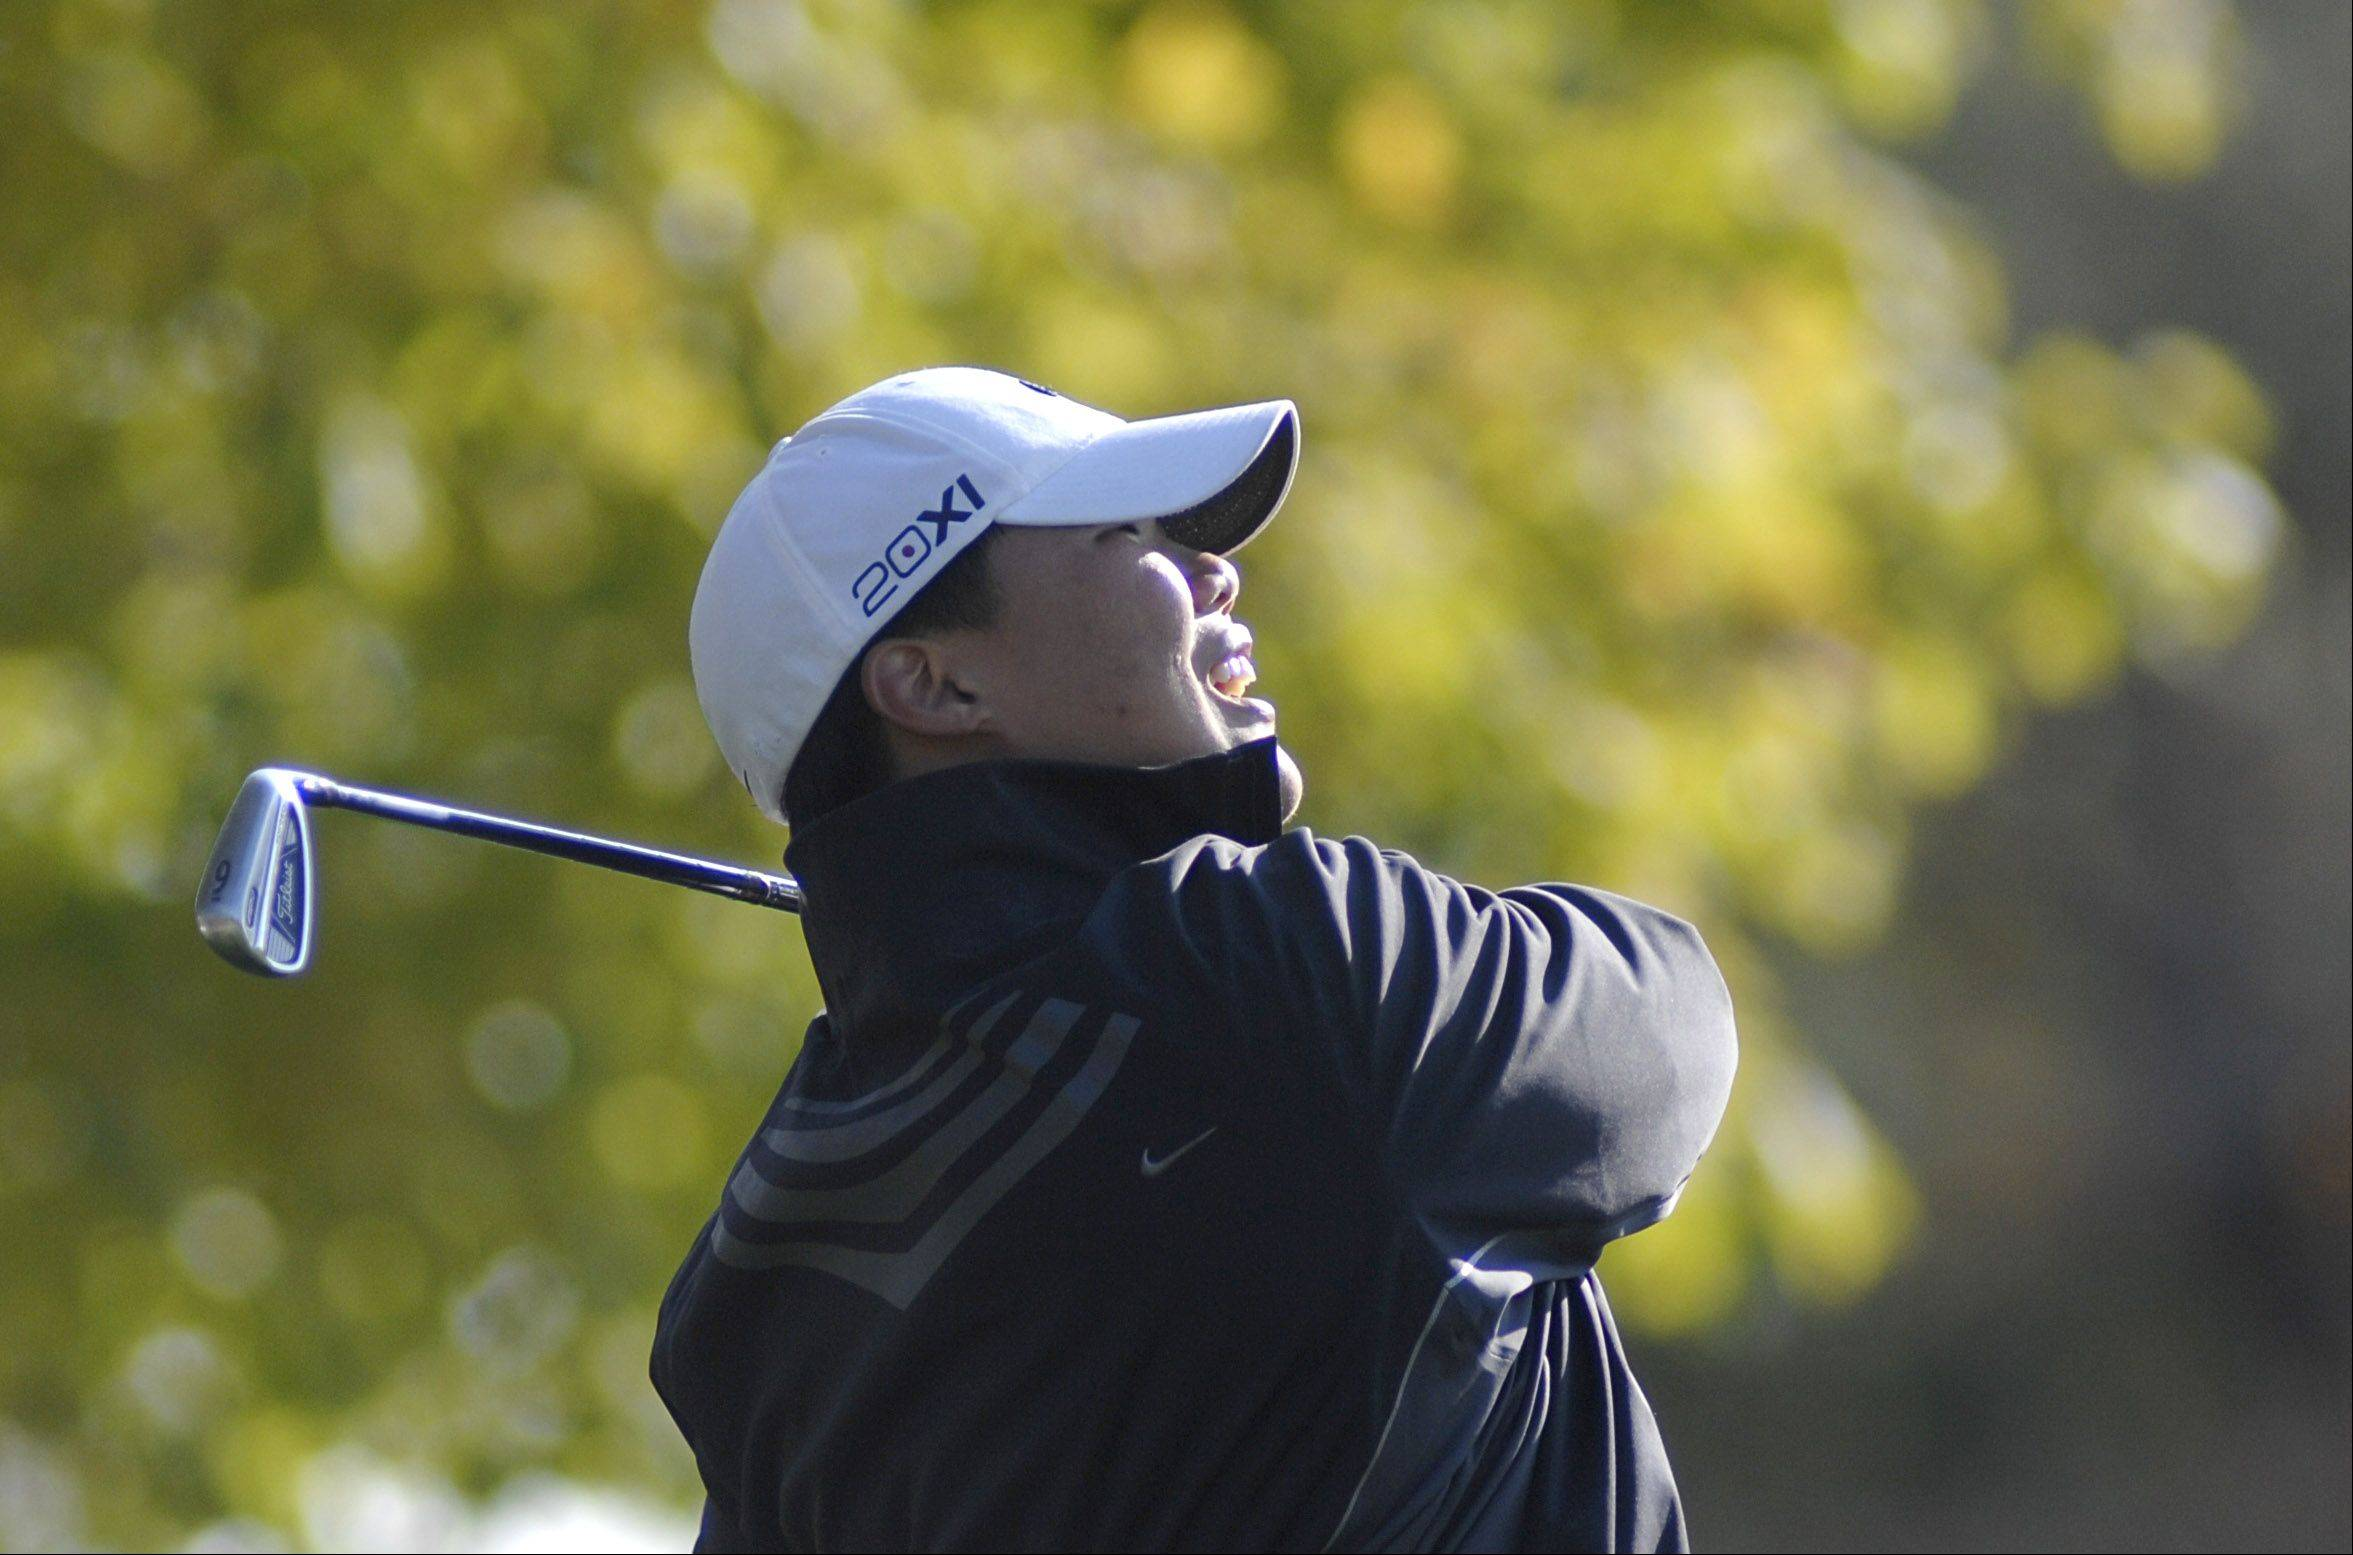 Grayslake Central's Dan Choi tees off at hole four in the Fox Valley Conference tournament at Crystal Woods Golf Course in Woodstock on Thursday, September 27.